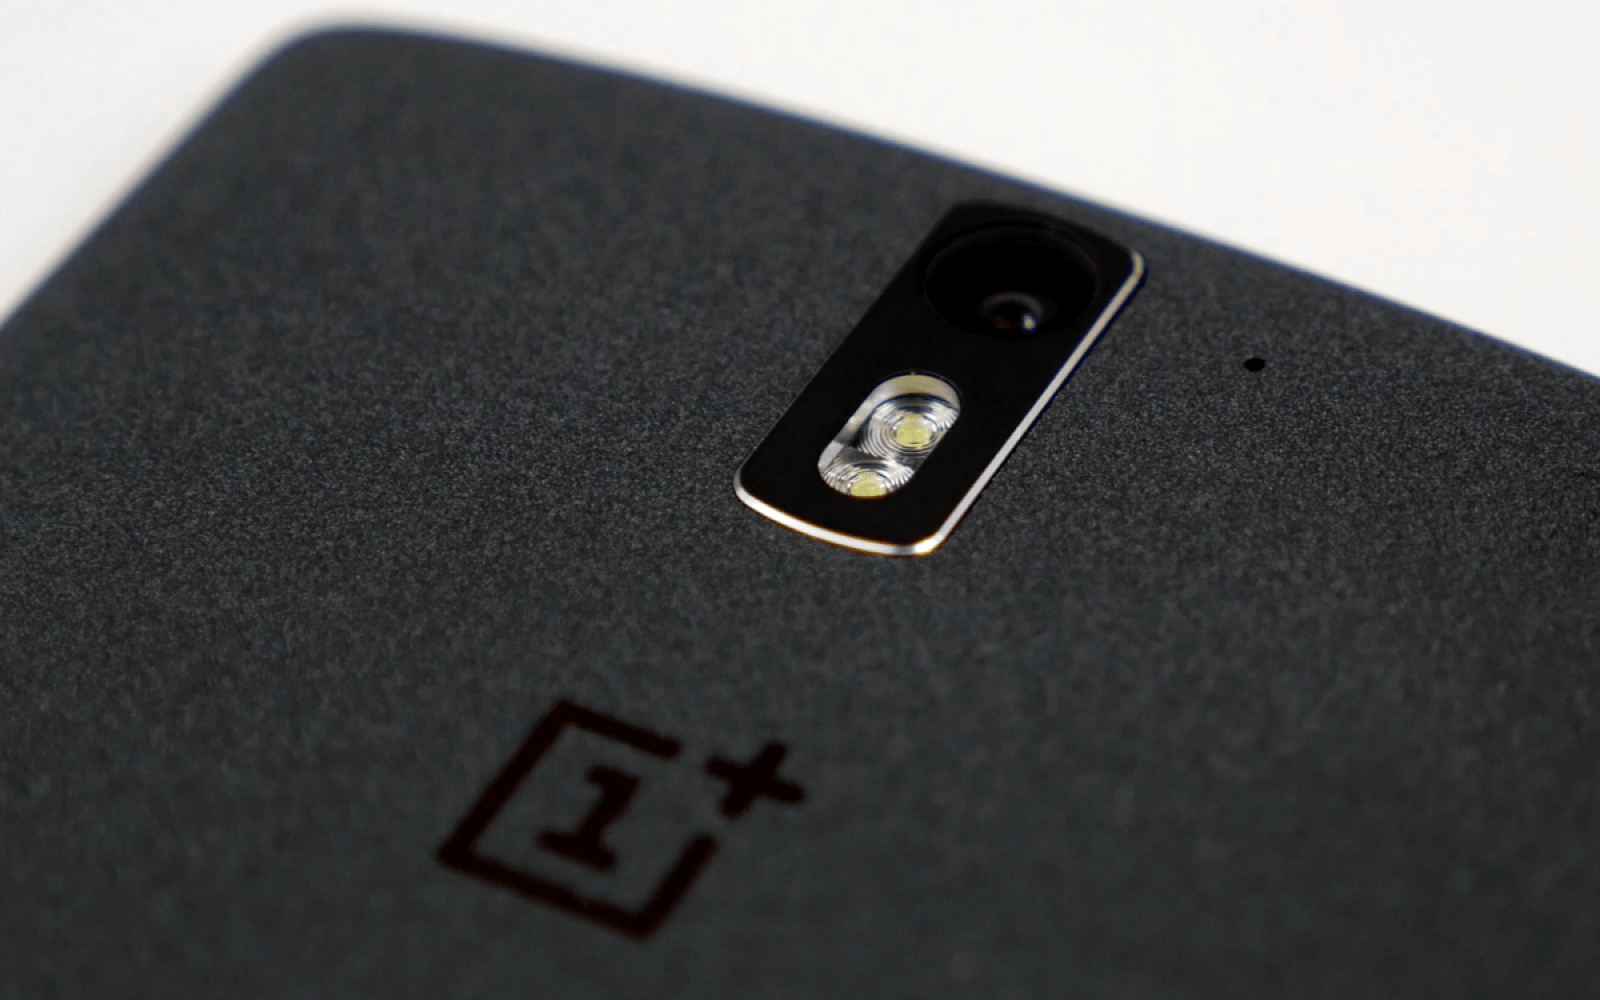 New OnePlus device with octa-core processor appears in benchmark results